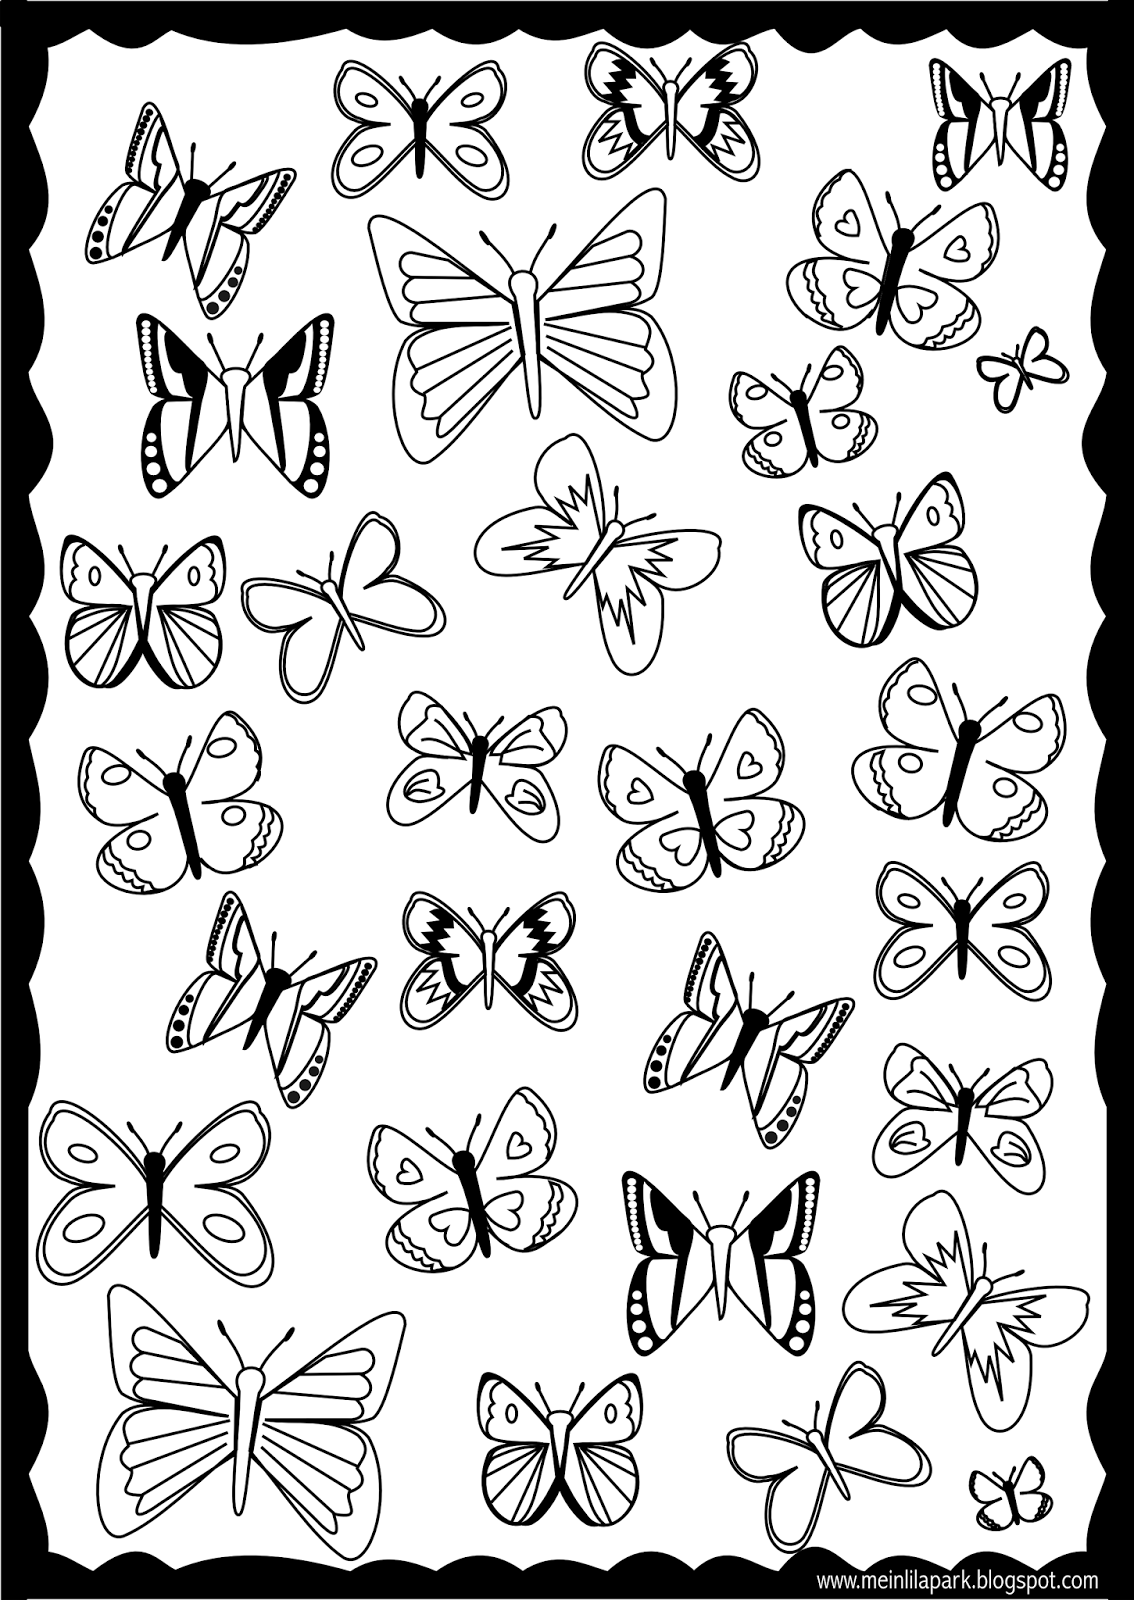 butterflies to color free free printable butterfly coloring pages for kids butterflies color free to